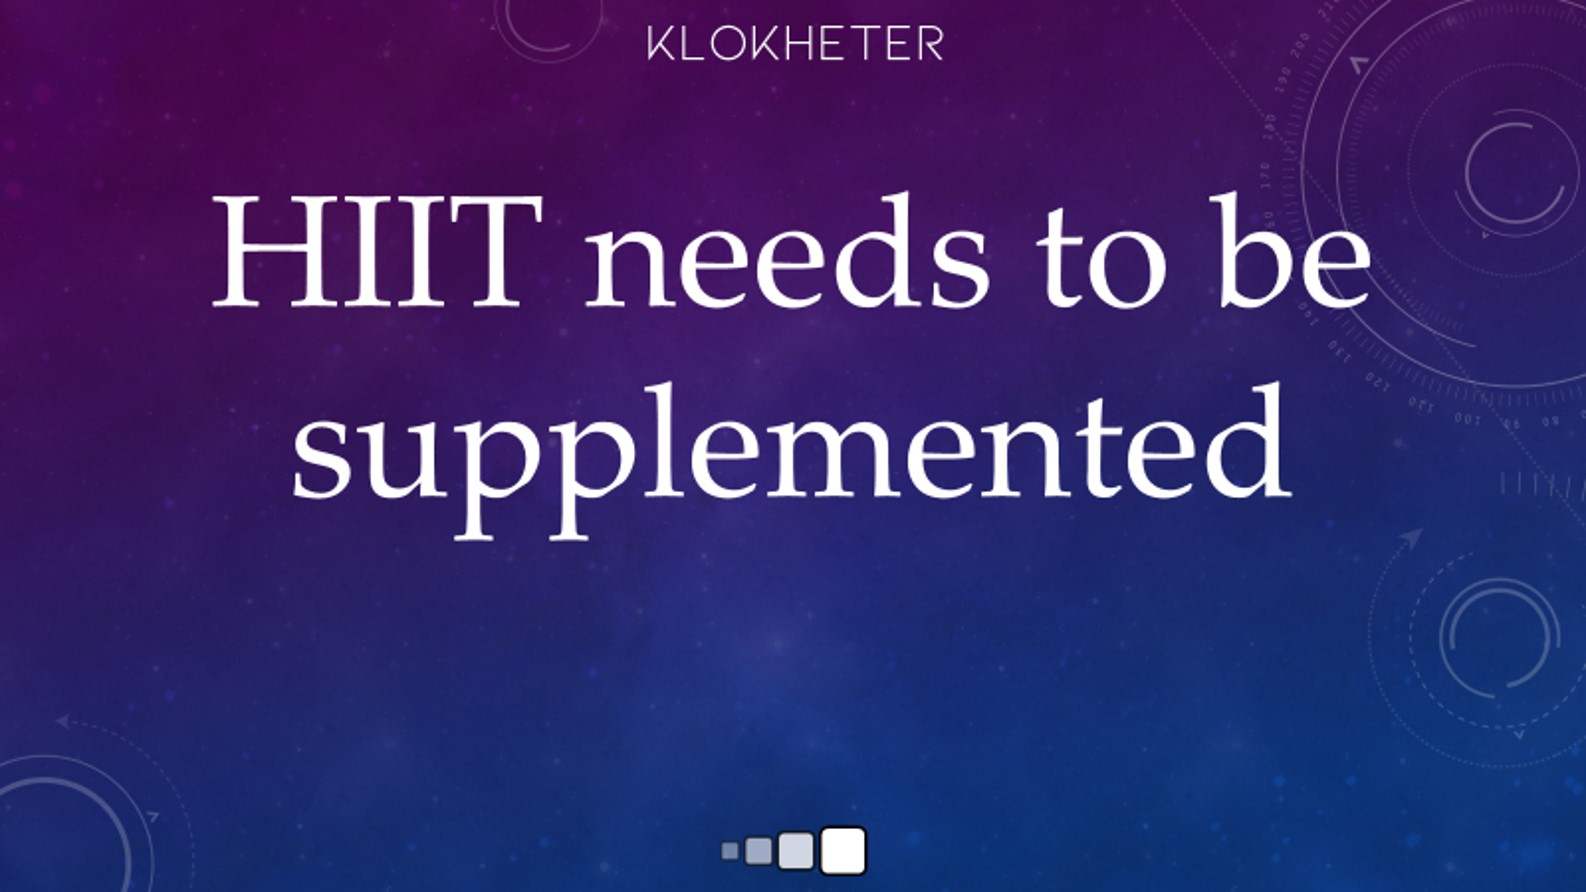 hiit needs to be supplemented